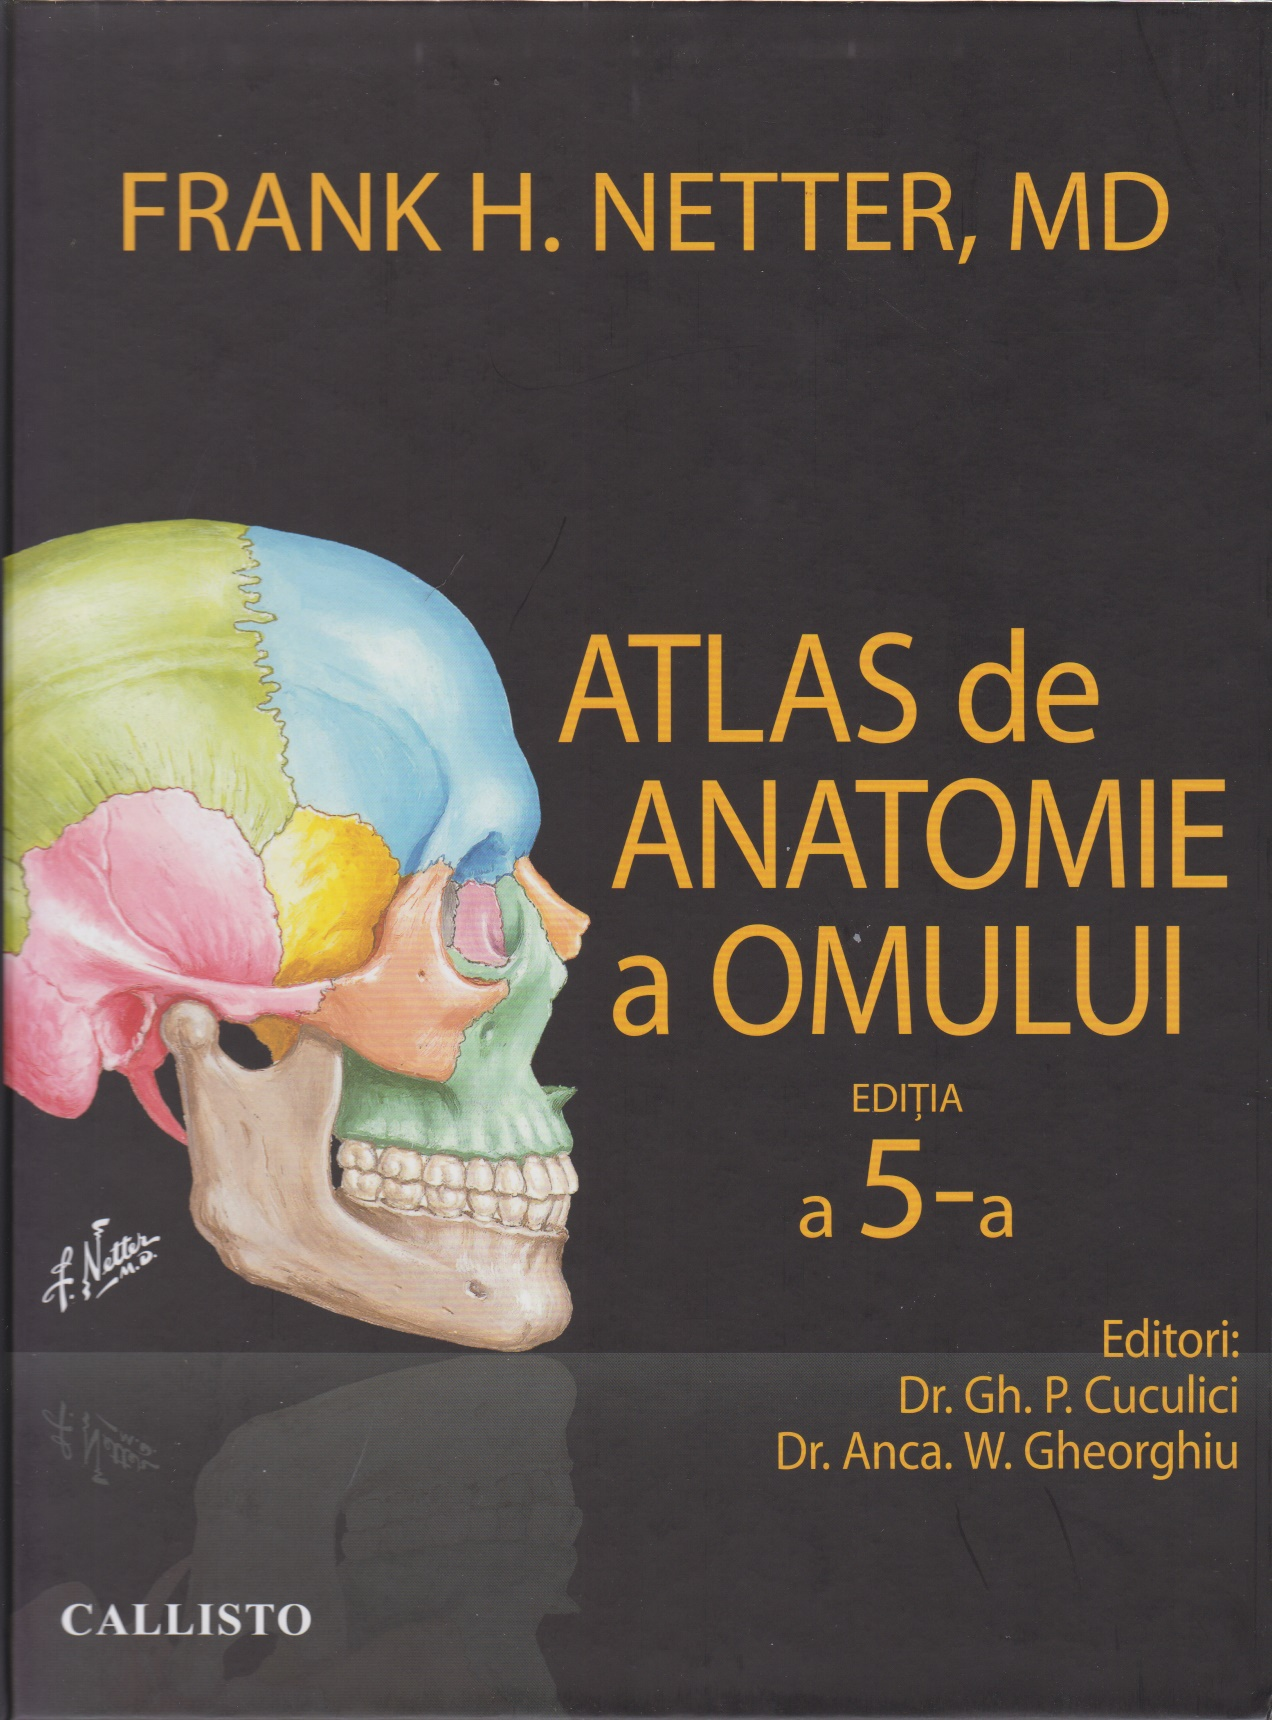 Atlas anatomie omului Netter (editia